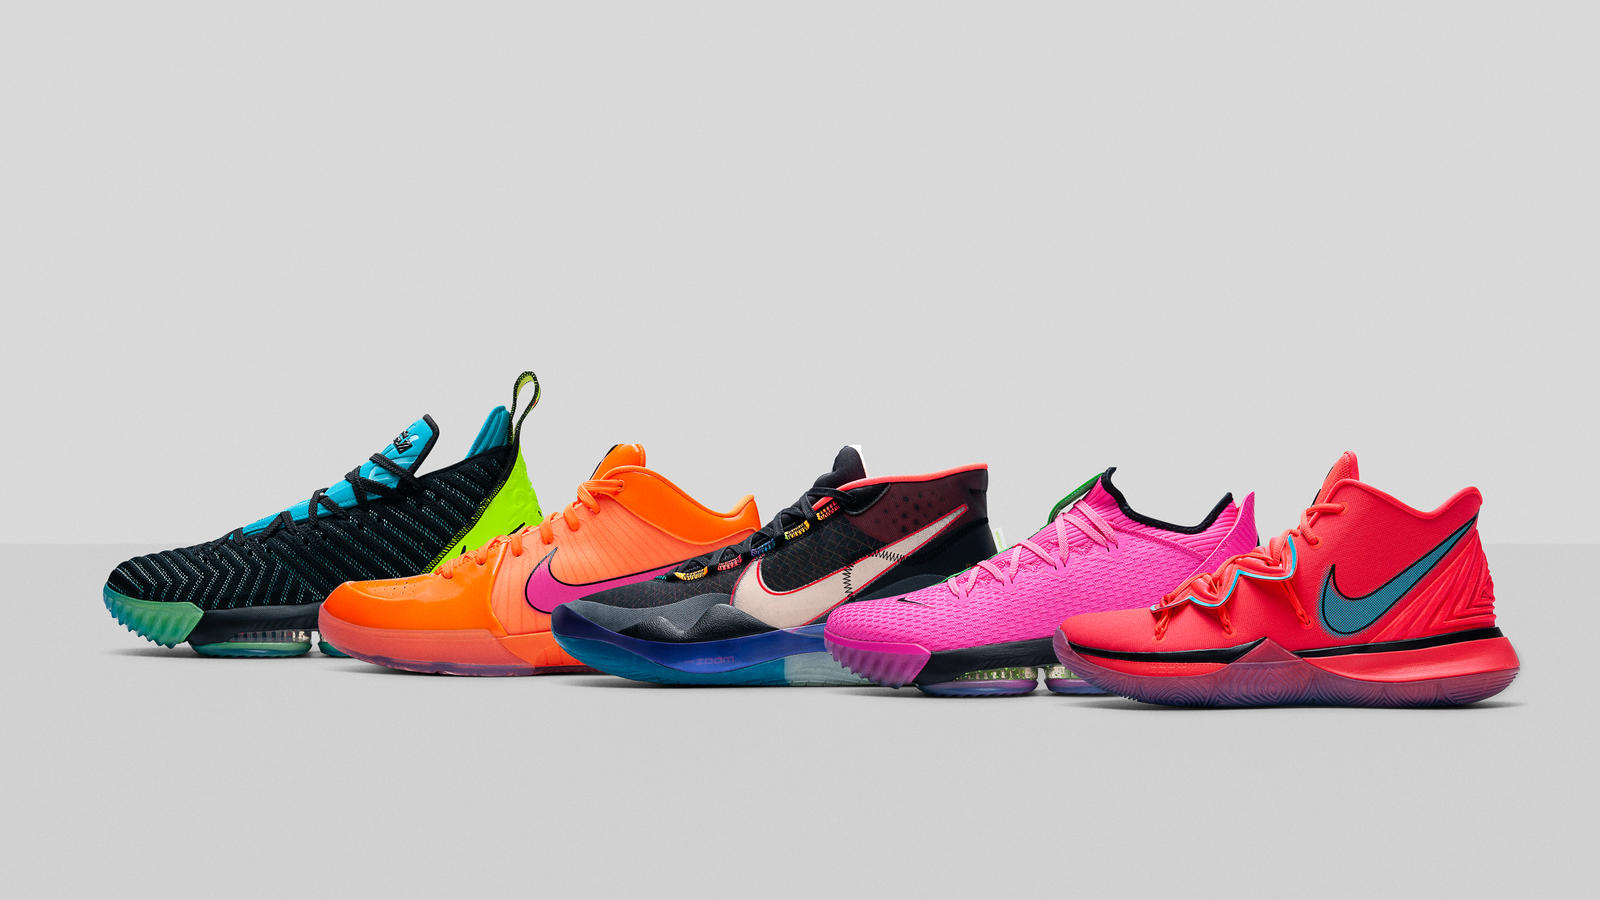 2019 WNBA All-Star Game PE Collection 1